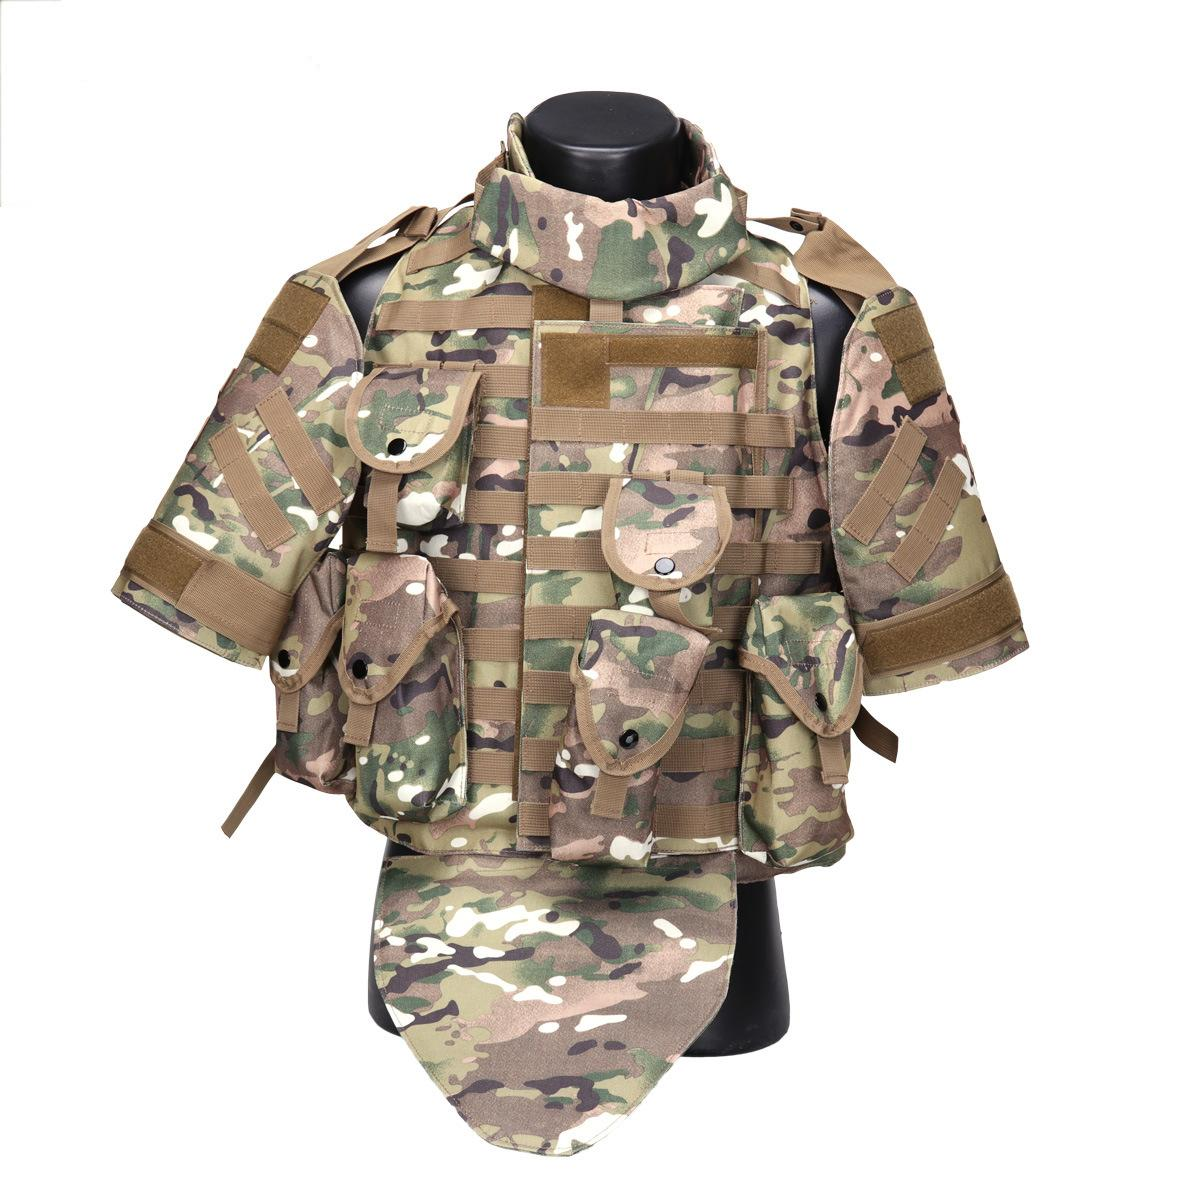 OTV Tactical Vest Camouflage Body Armor Combat Vest With Pouch/Pad USMC Airsoft Army Molle Assault Plate Carrier CS Clothing